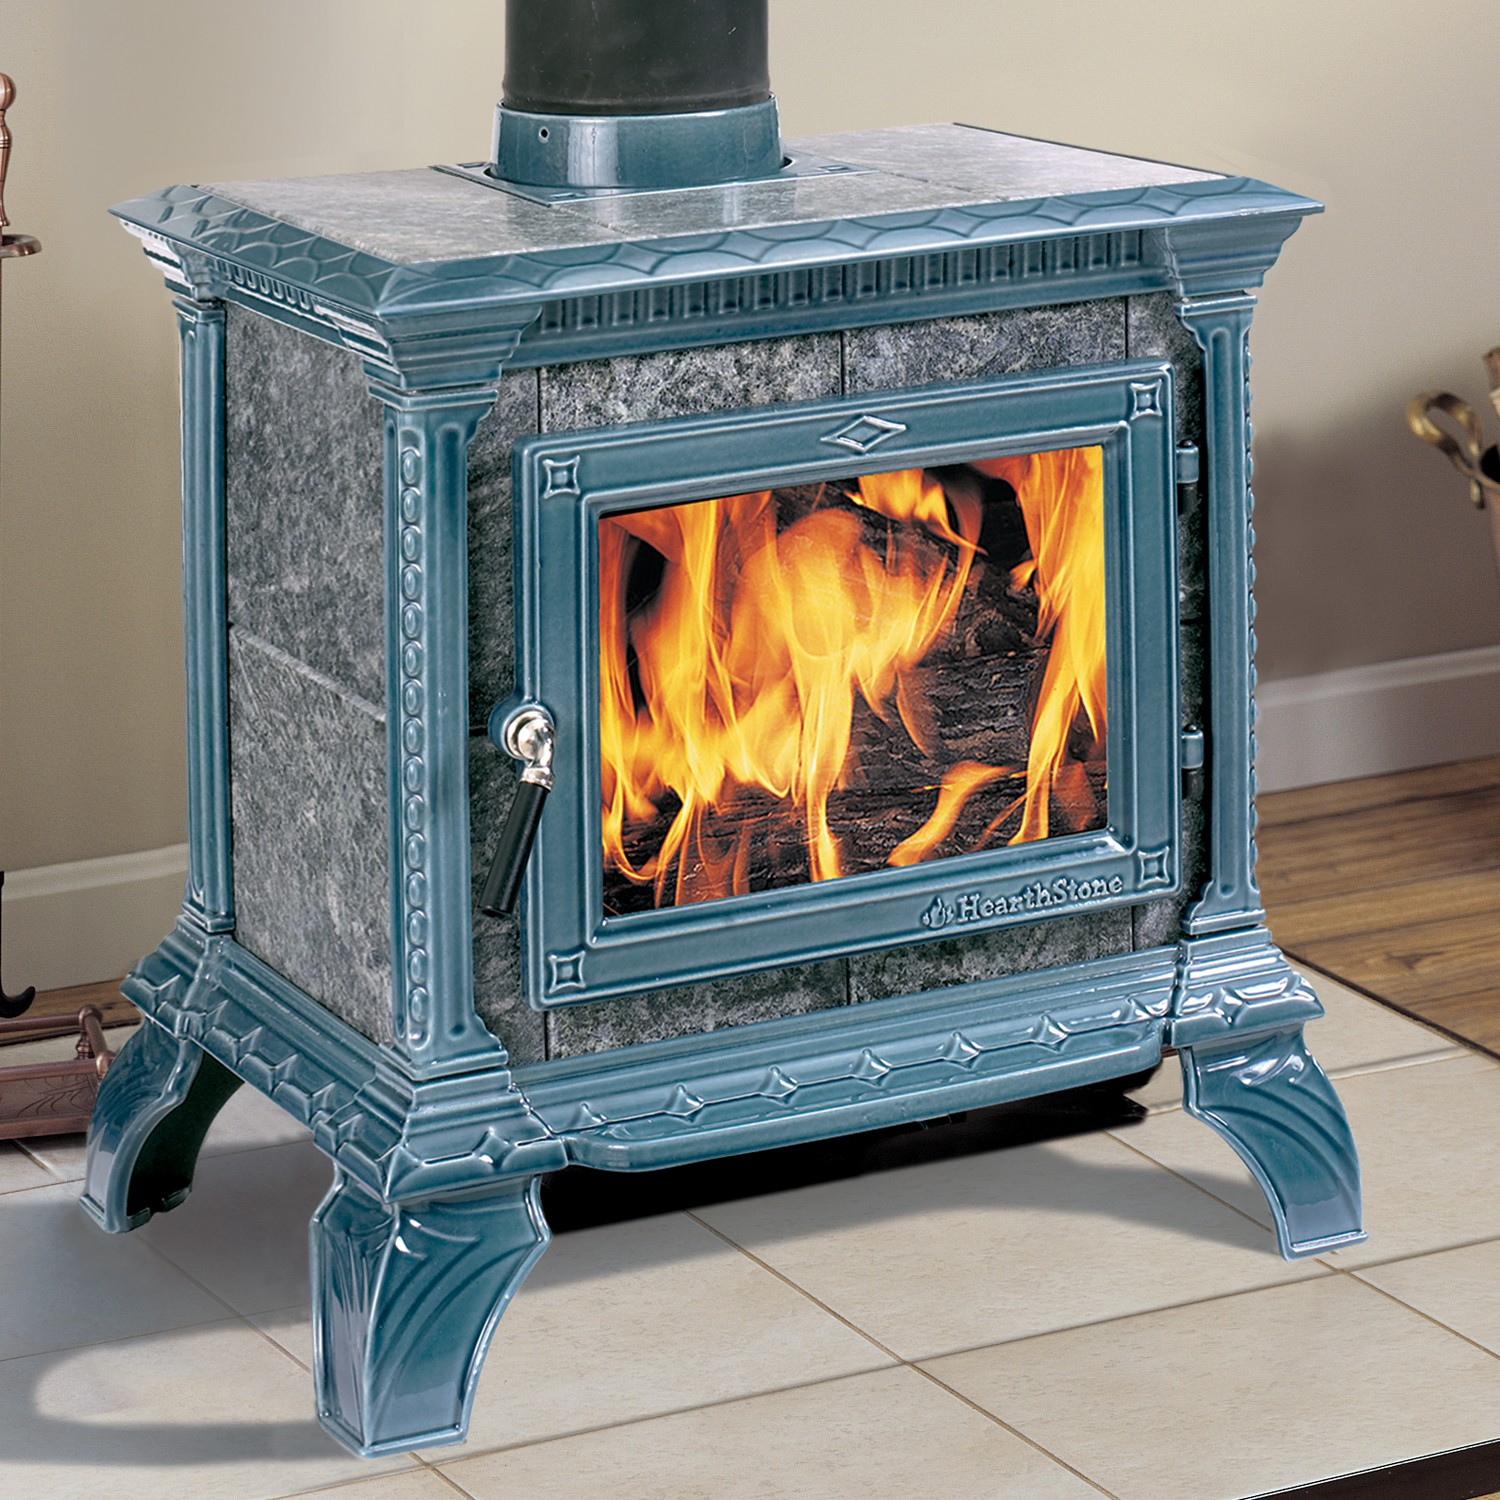 Hearthstone Tribute wood stove.  Smallest soapstone stove of the line.  Shown in Seafoam Green enamel finish.  Made in USA